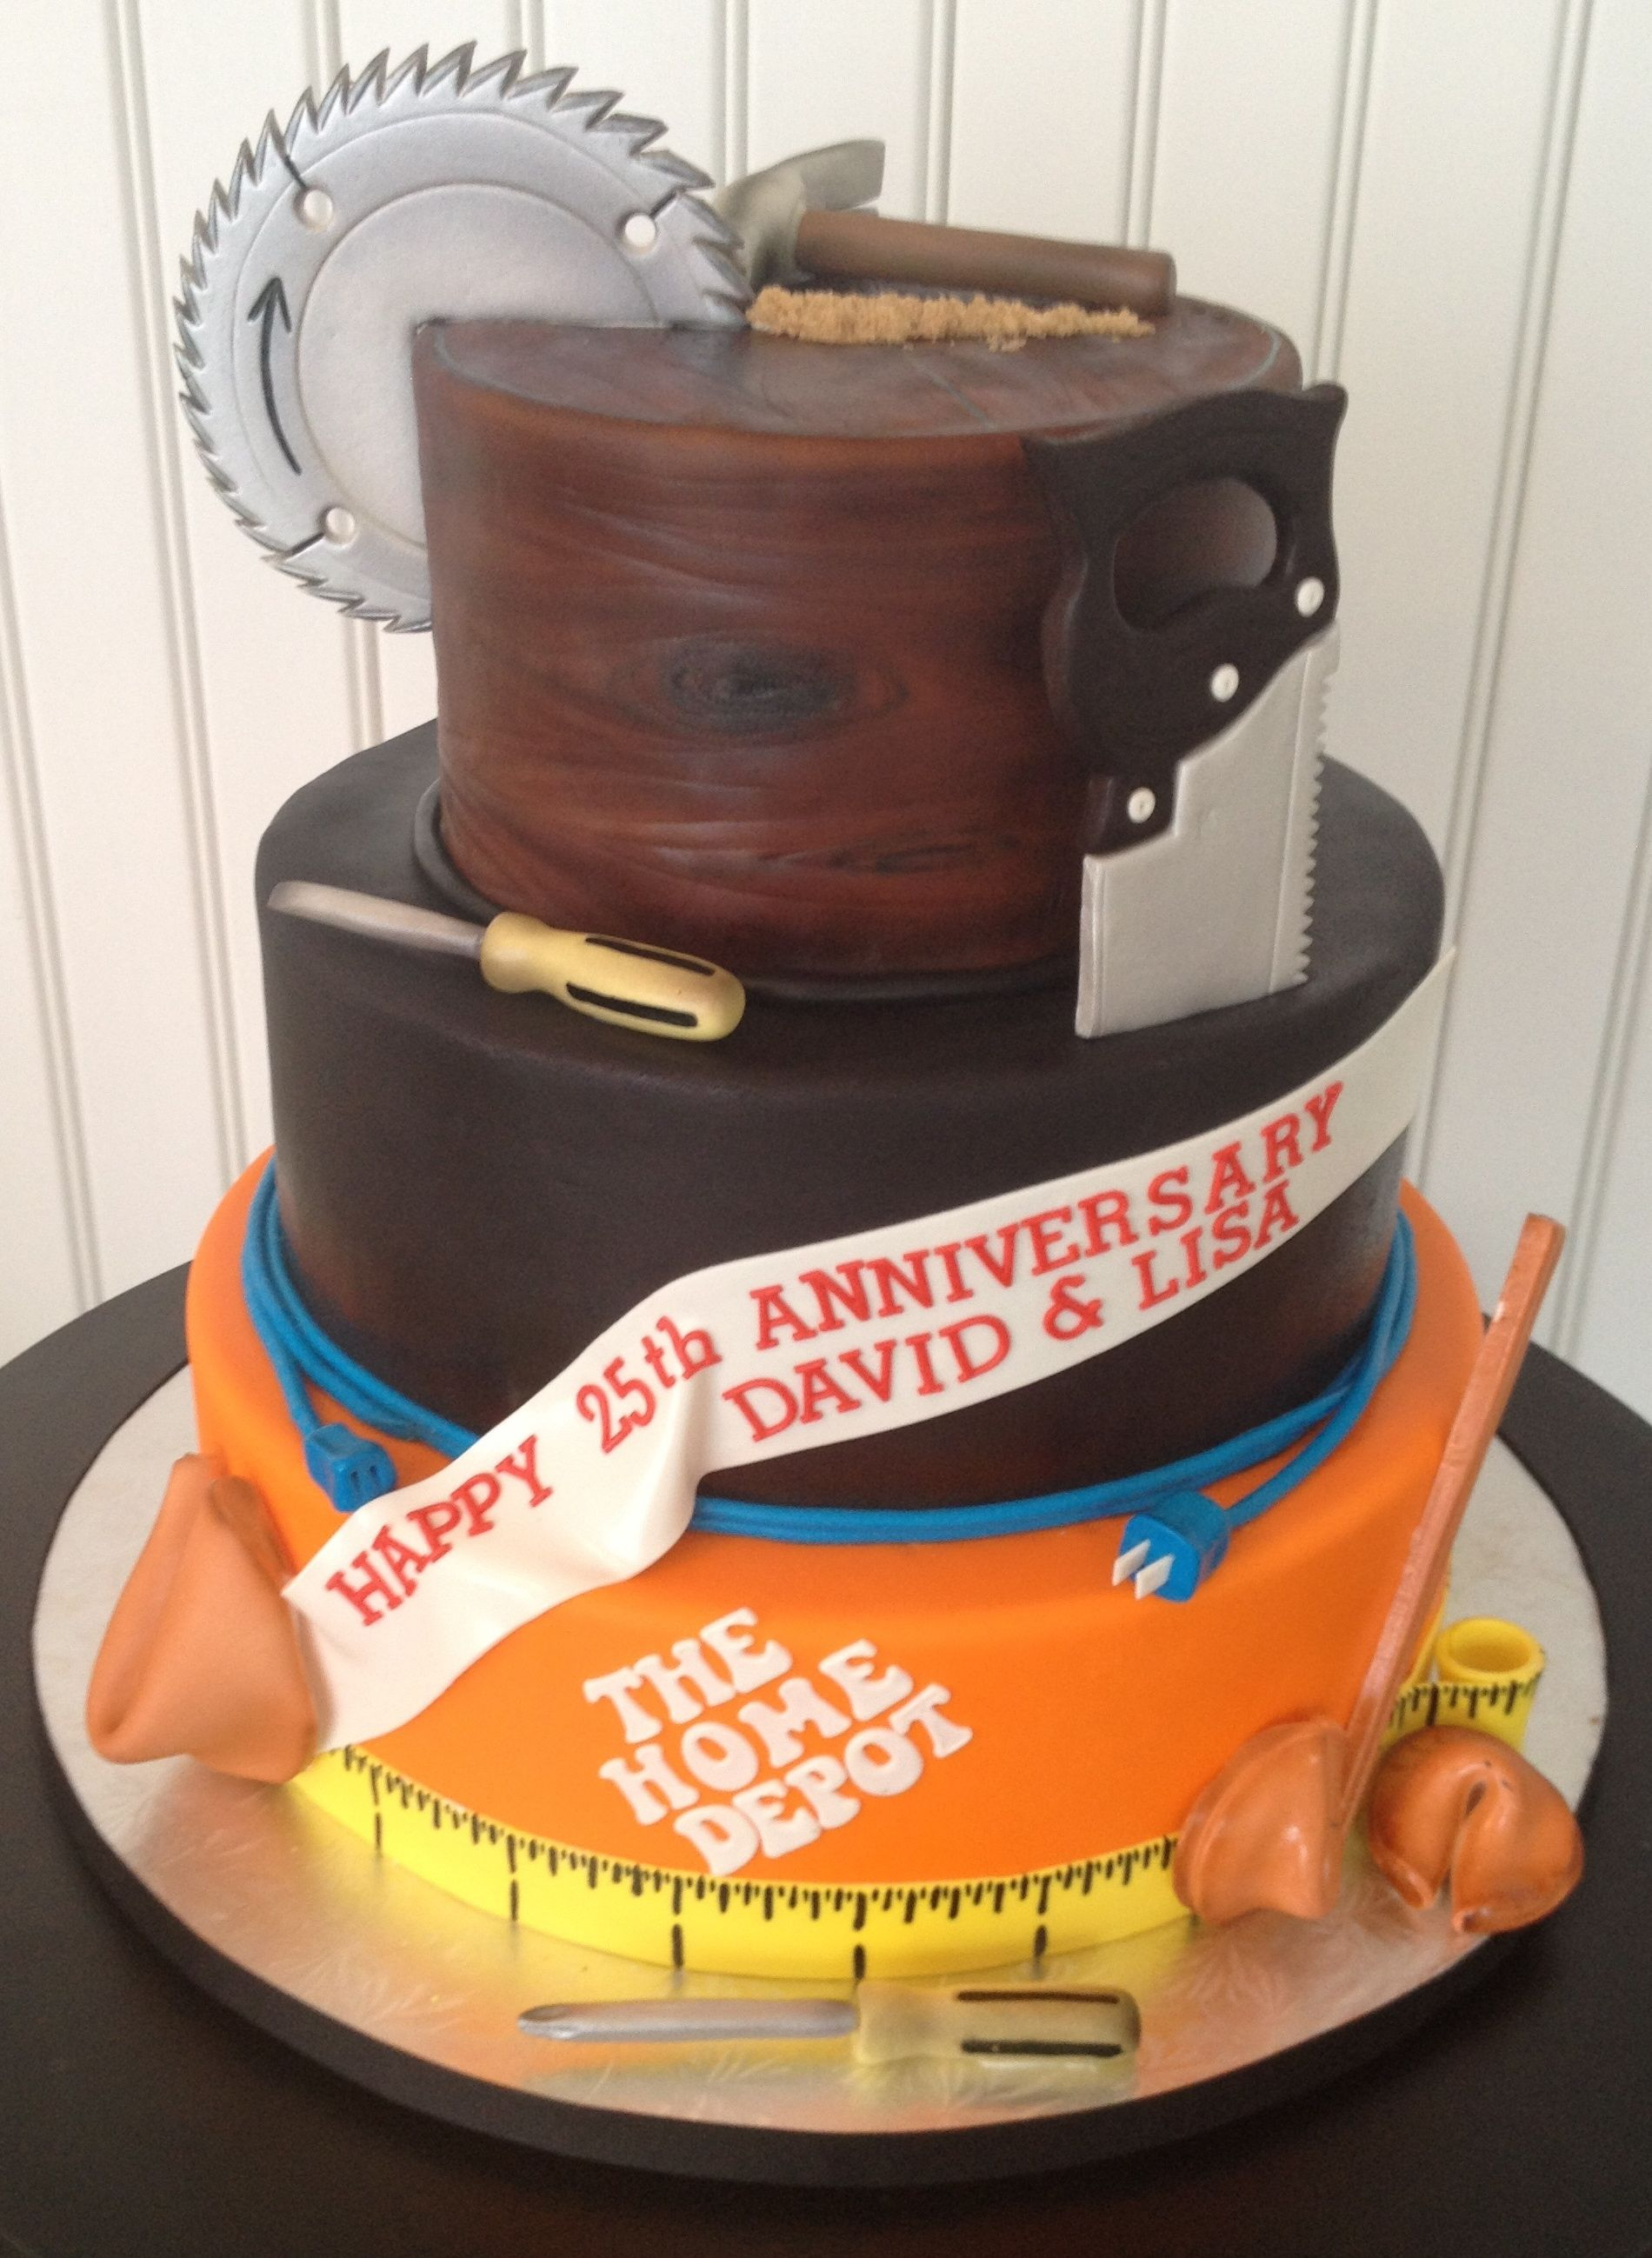 Tools Cake Would be perfect for my dad for his birthday or Fathers